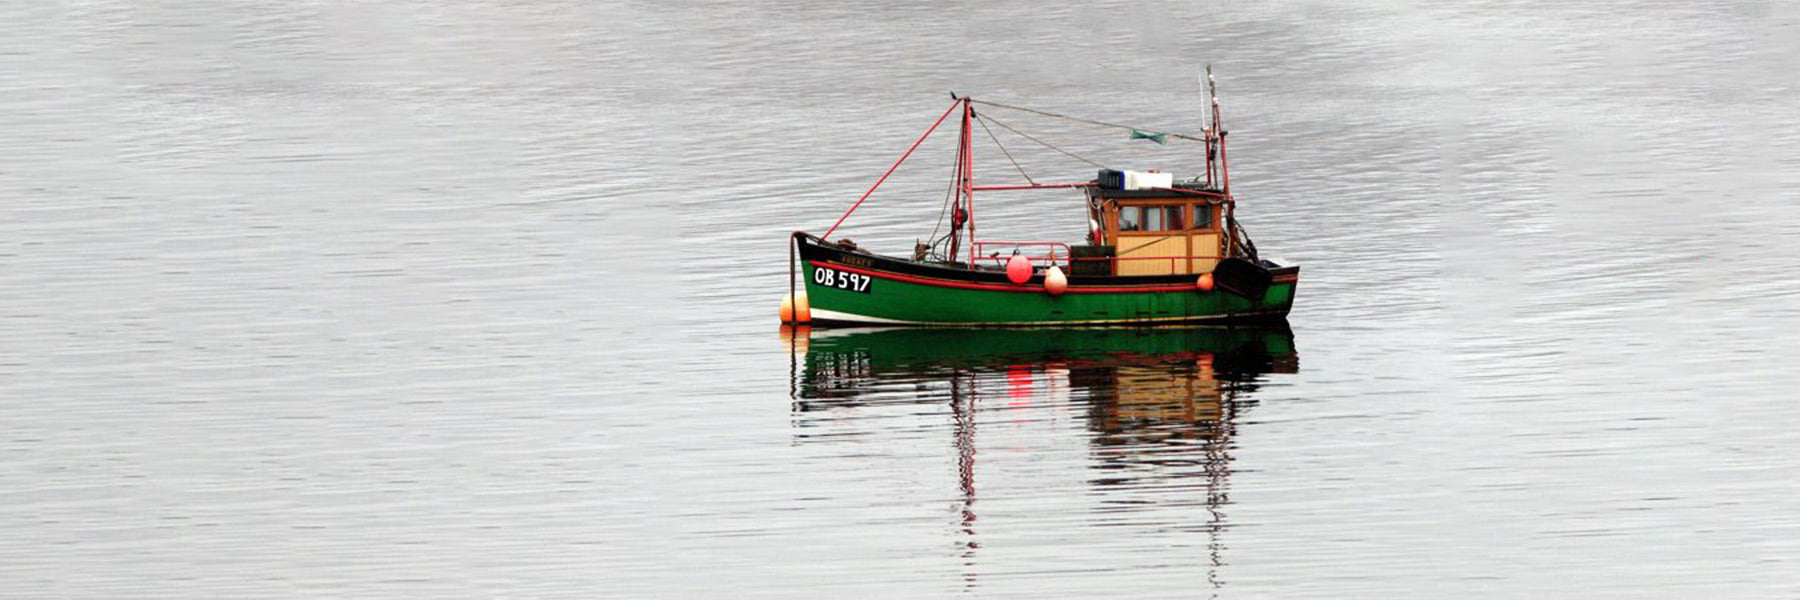 Scottish fishing boat on loch Creran